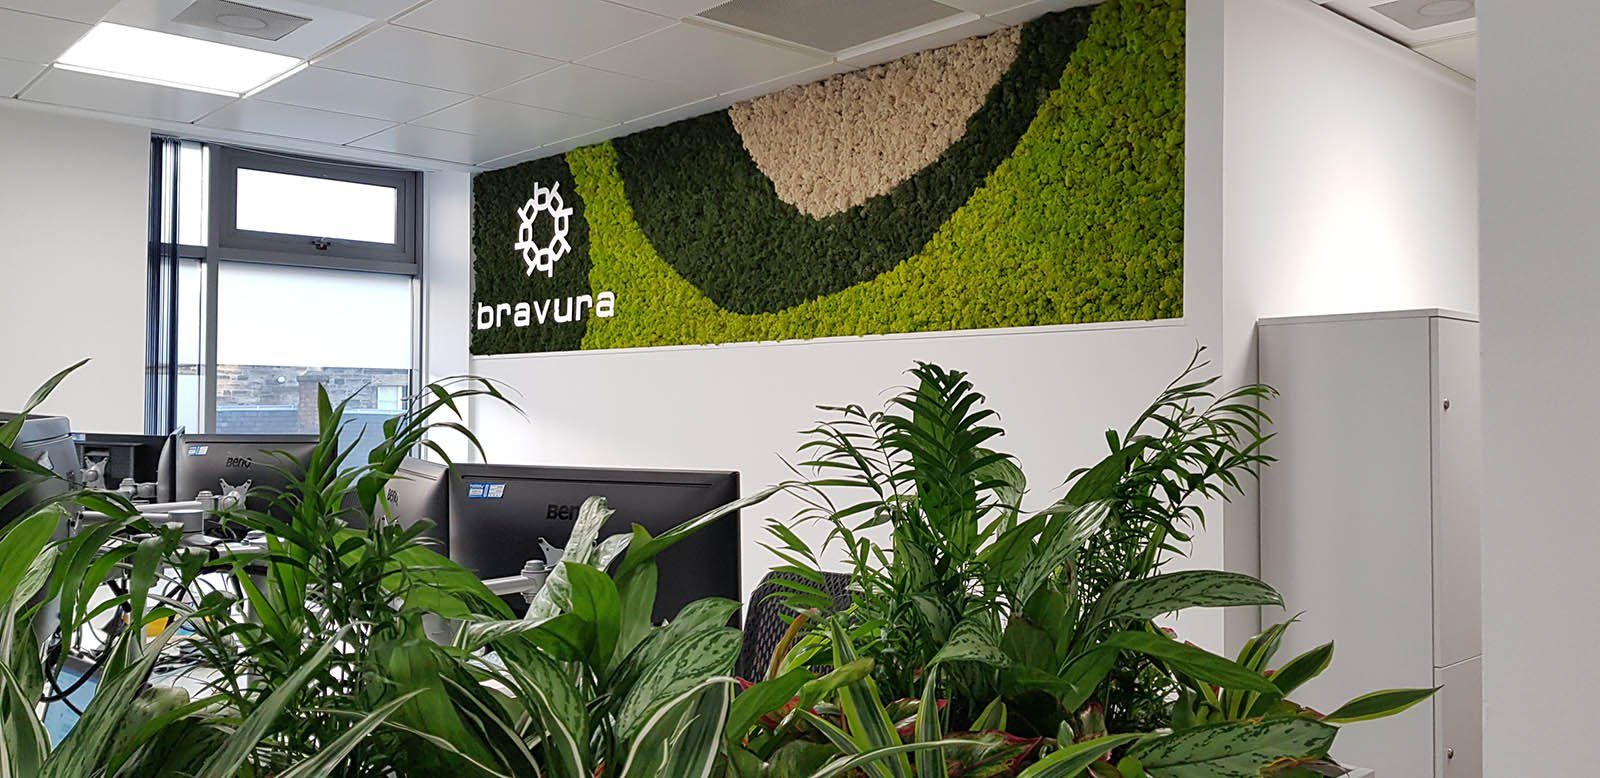 Bravura's office with a bespoke branded Nordik Moss wall panel and cabinet top planters with varied lush live plants